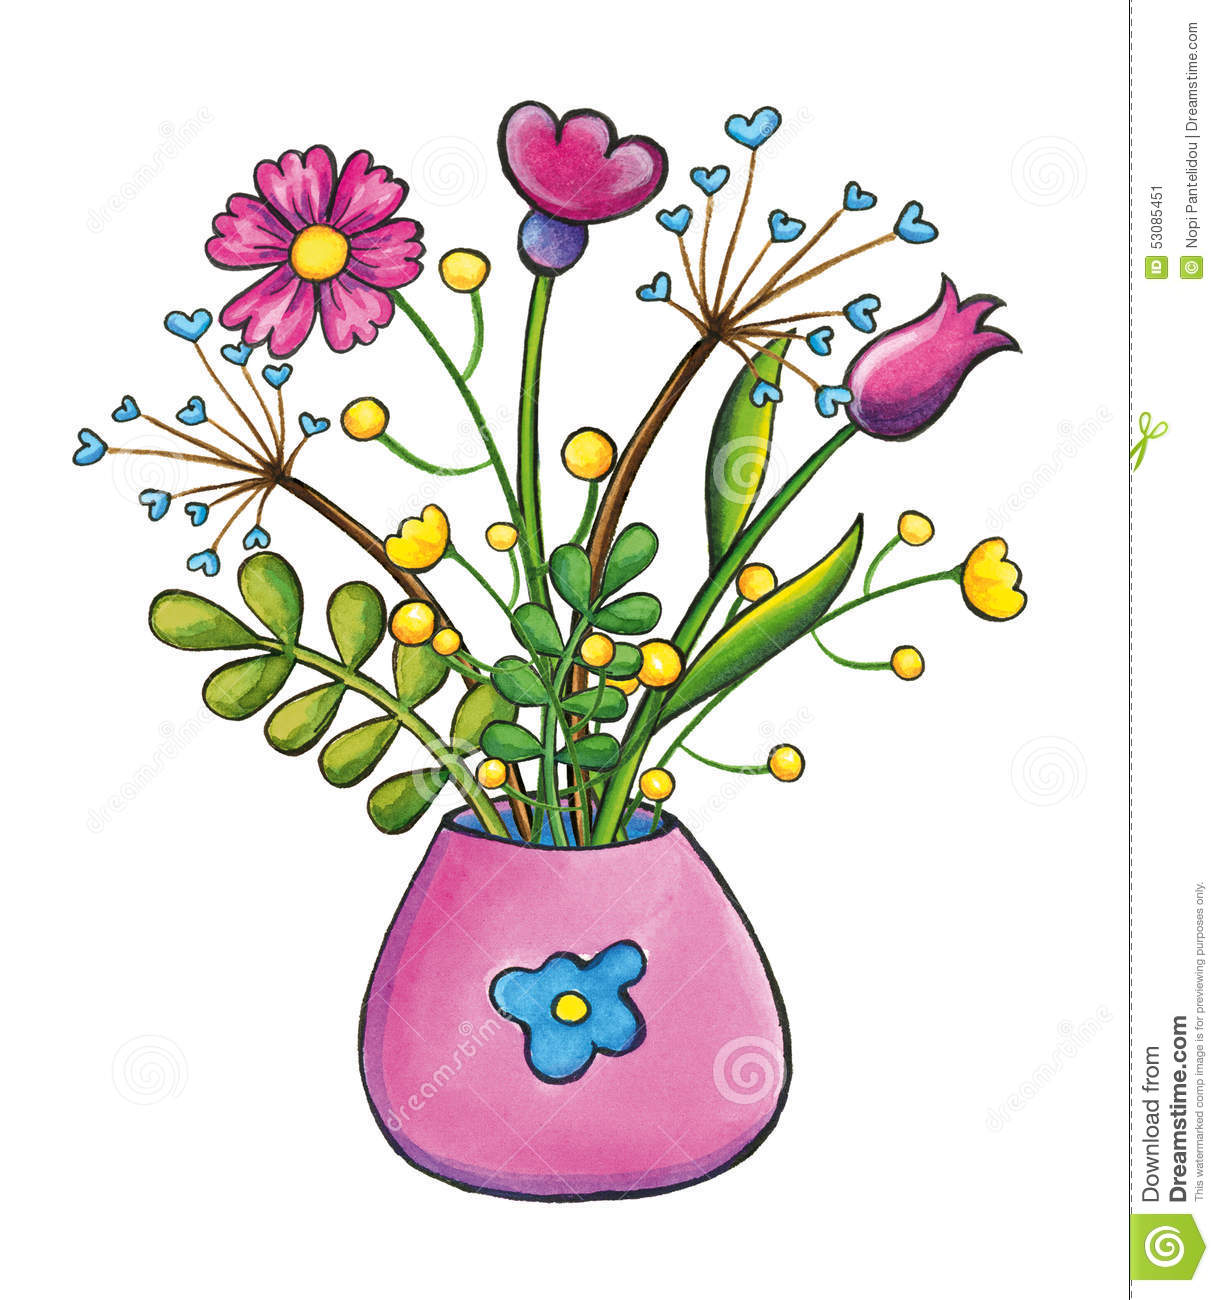 Bouquet Of Flowers Hand Drawn Clip Art Illustration Stock.